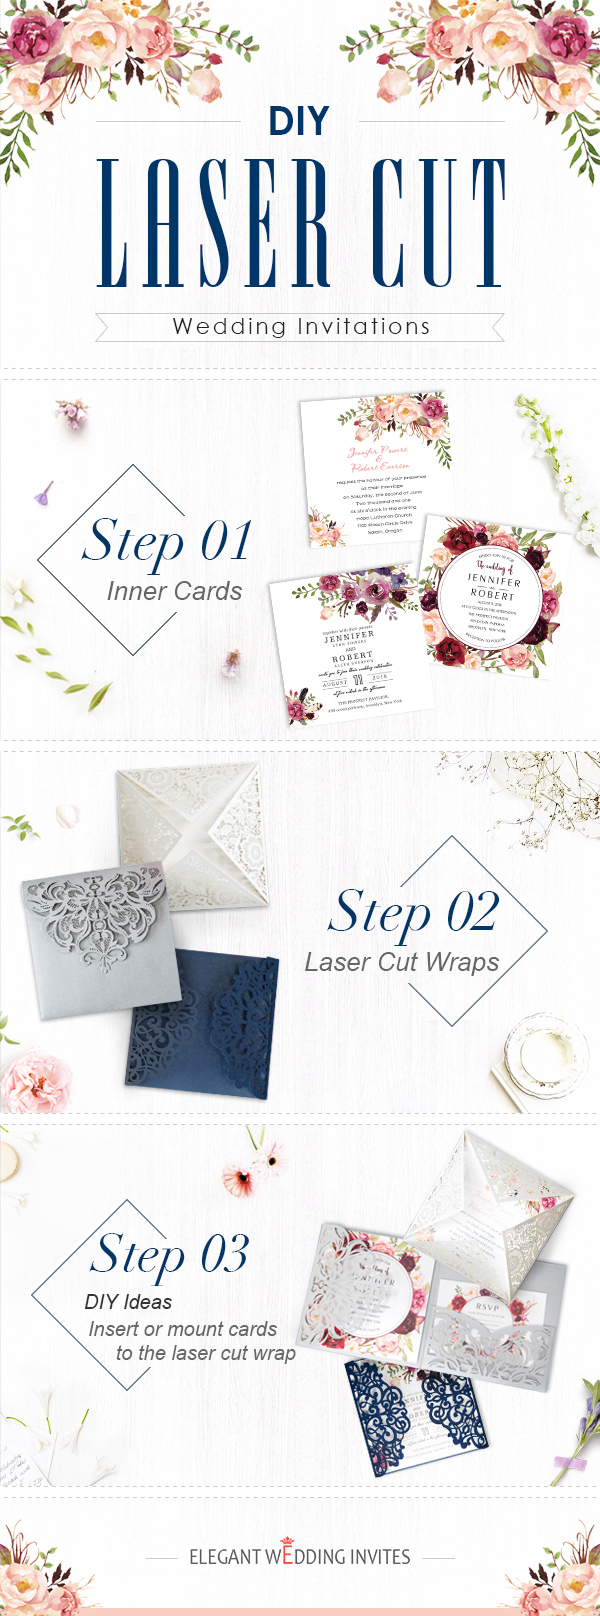 Laser Cut Wedding Invitations Diy Top 6 Diy Wedding Invitations Ideas Elegant Wedding Invites